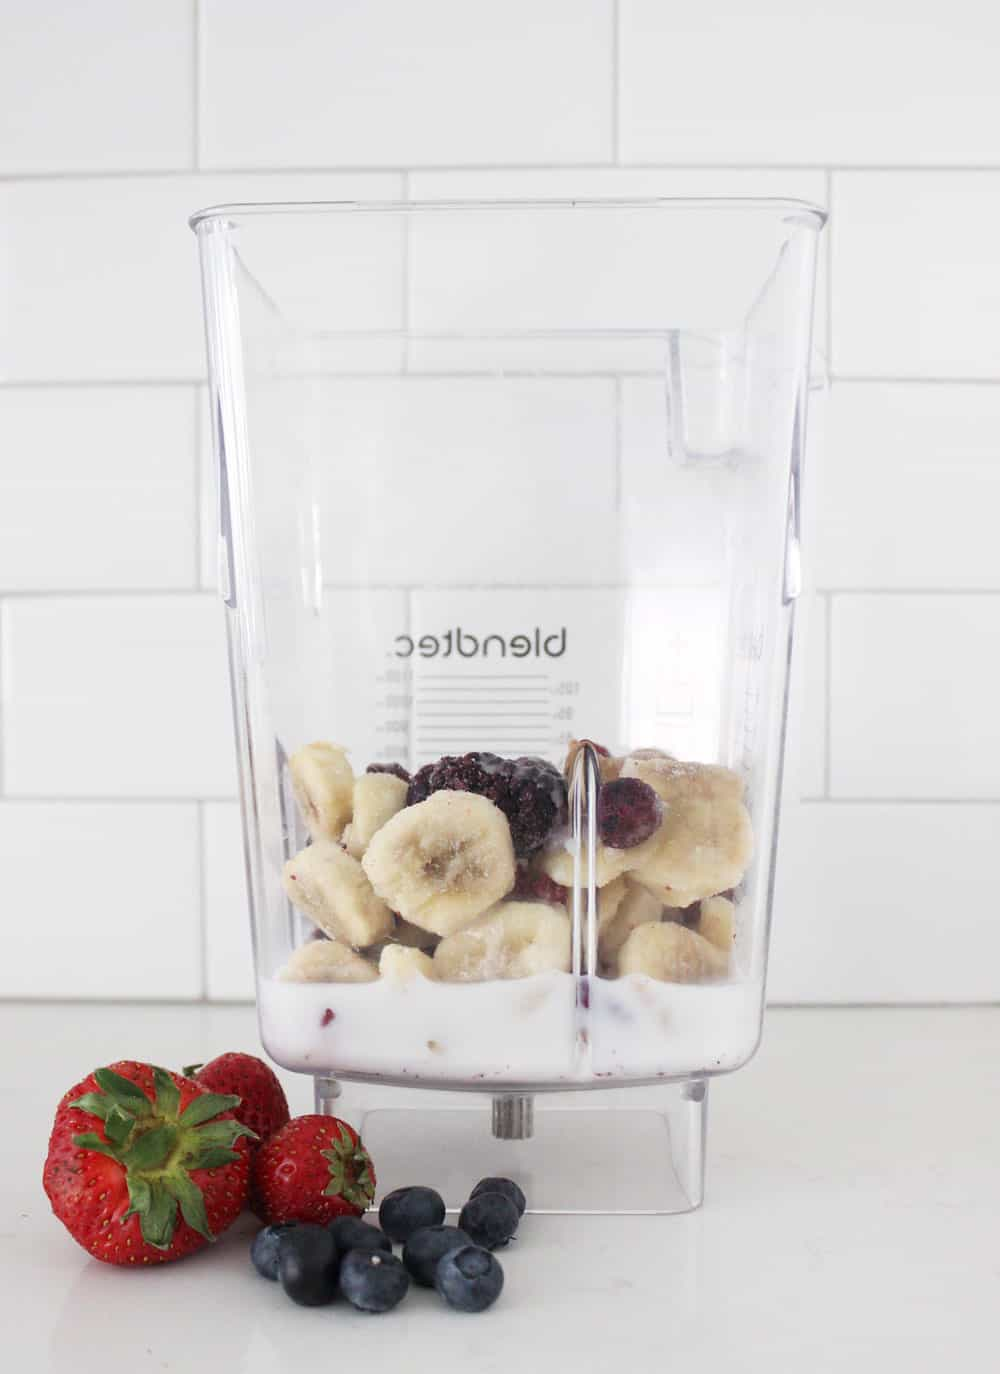 smoothie ingredients in a blender on a white counter